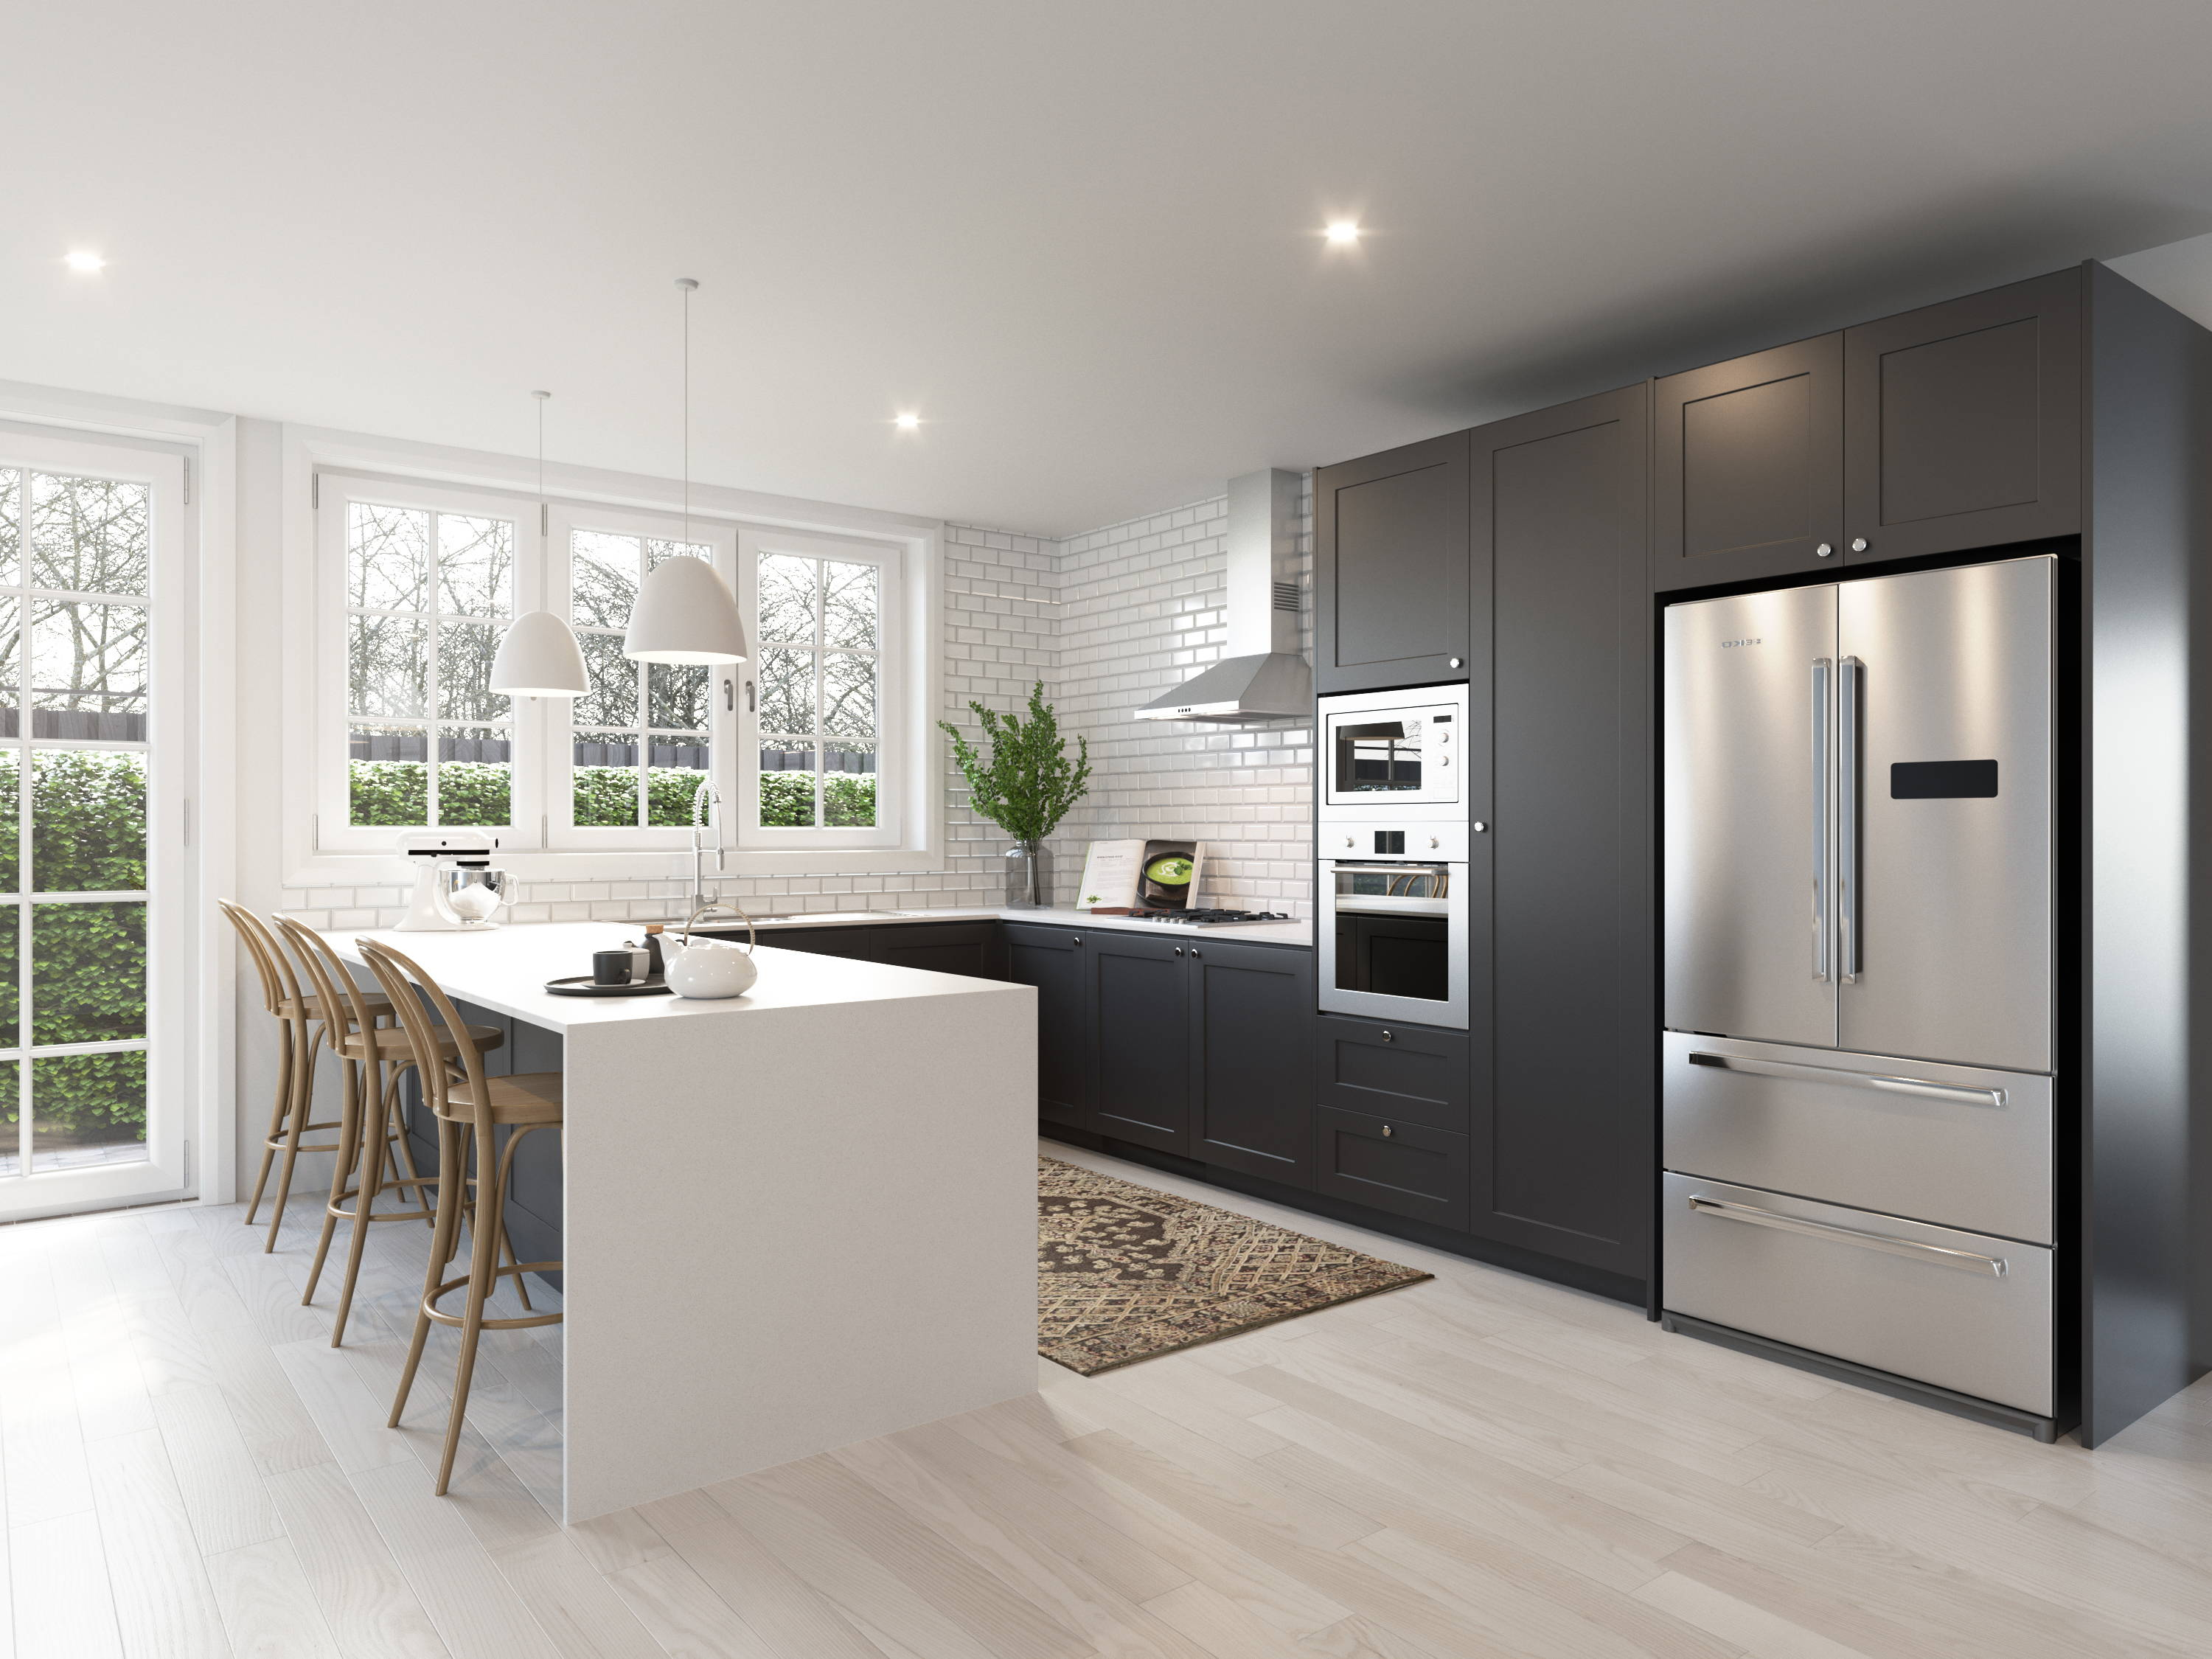 Stunning U Shape Design is perfect for a cosy kitchen setting